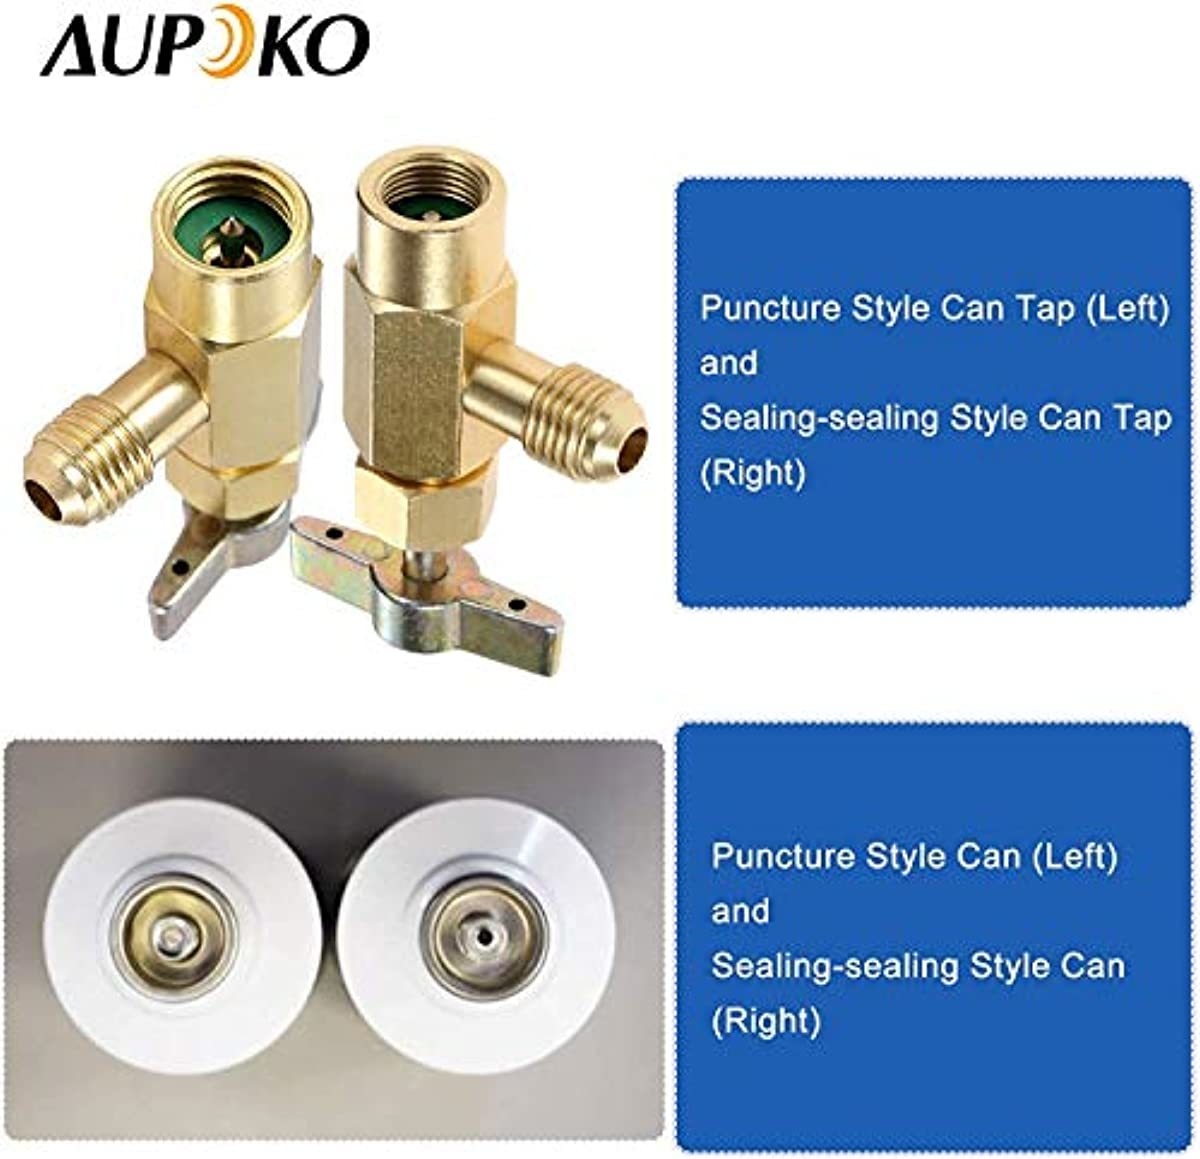 Aupoko R134A Self-Sealing Can Tap with R134A Tank Adapter, 1/2'' Acme to 1/4'' SAE Refrigerant Can Bottle Tap Opener with 1/4'' SAE Female and 1/2'' Acme Male Adapter, for Air Conditioner Manifold